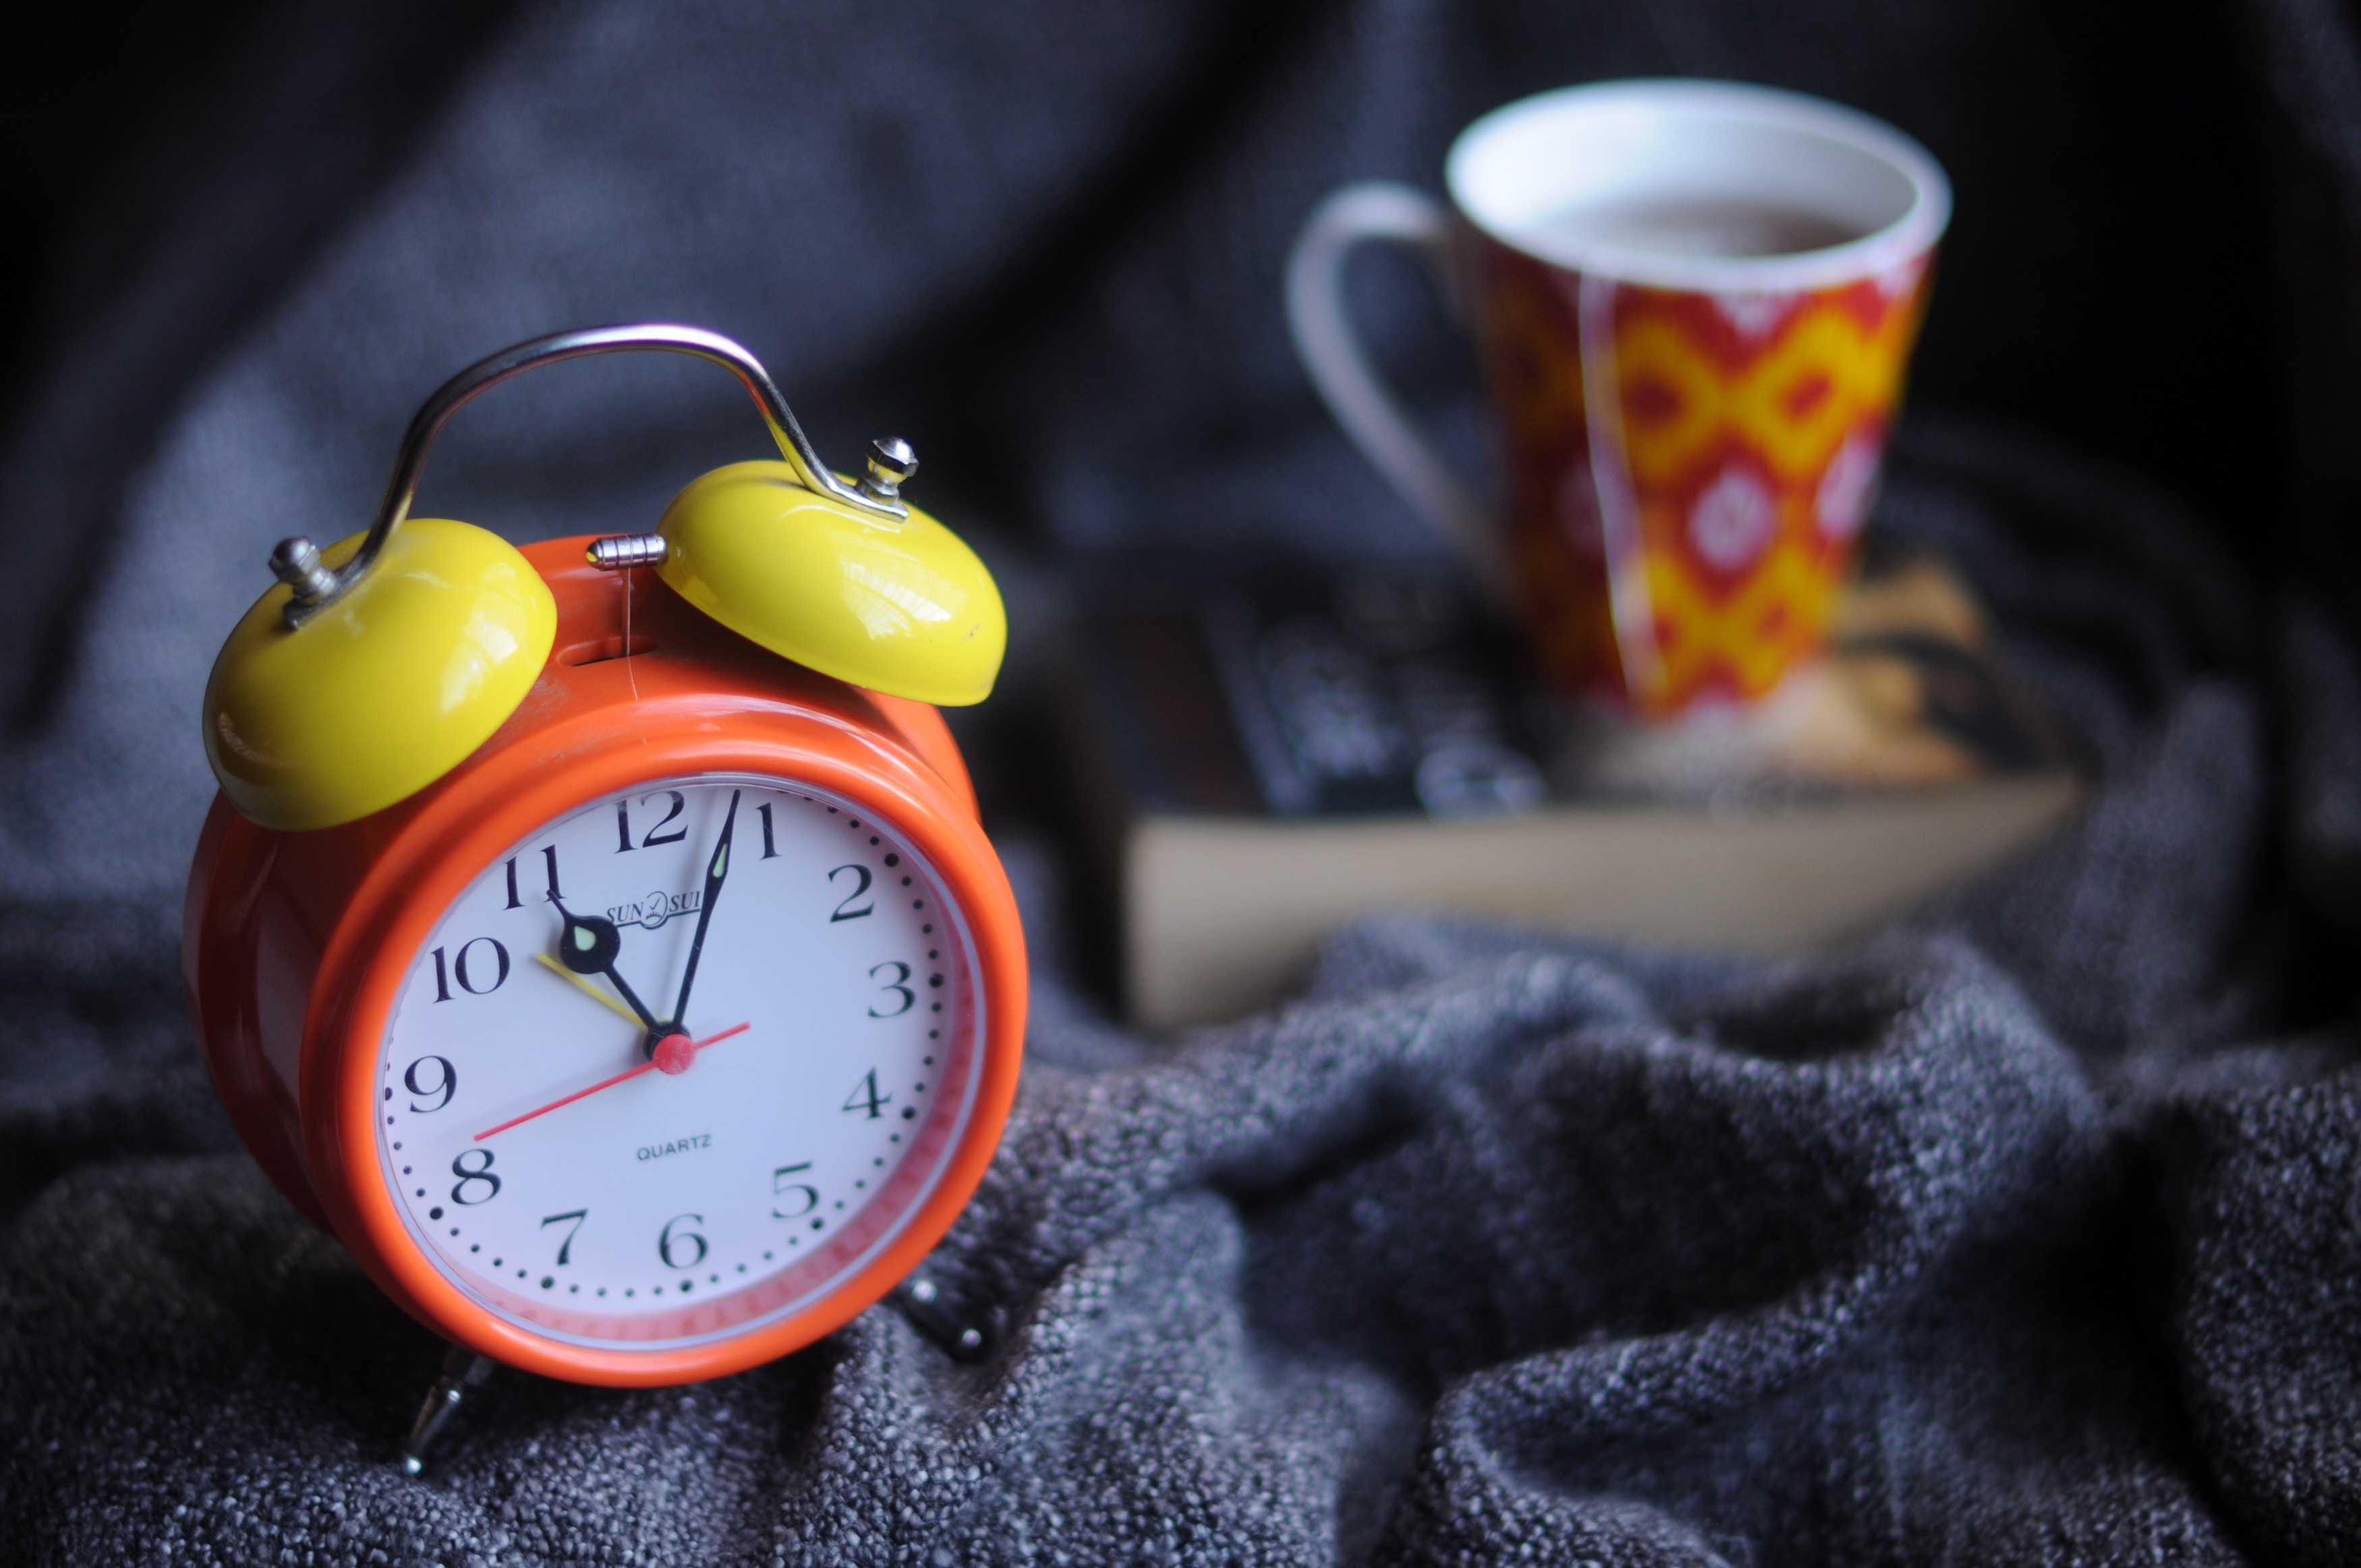 Set an alarm to limit your time for distractions so that you don't get distracted.